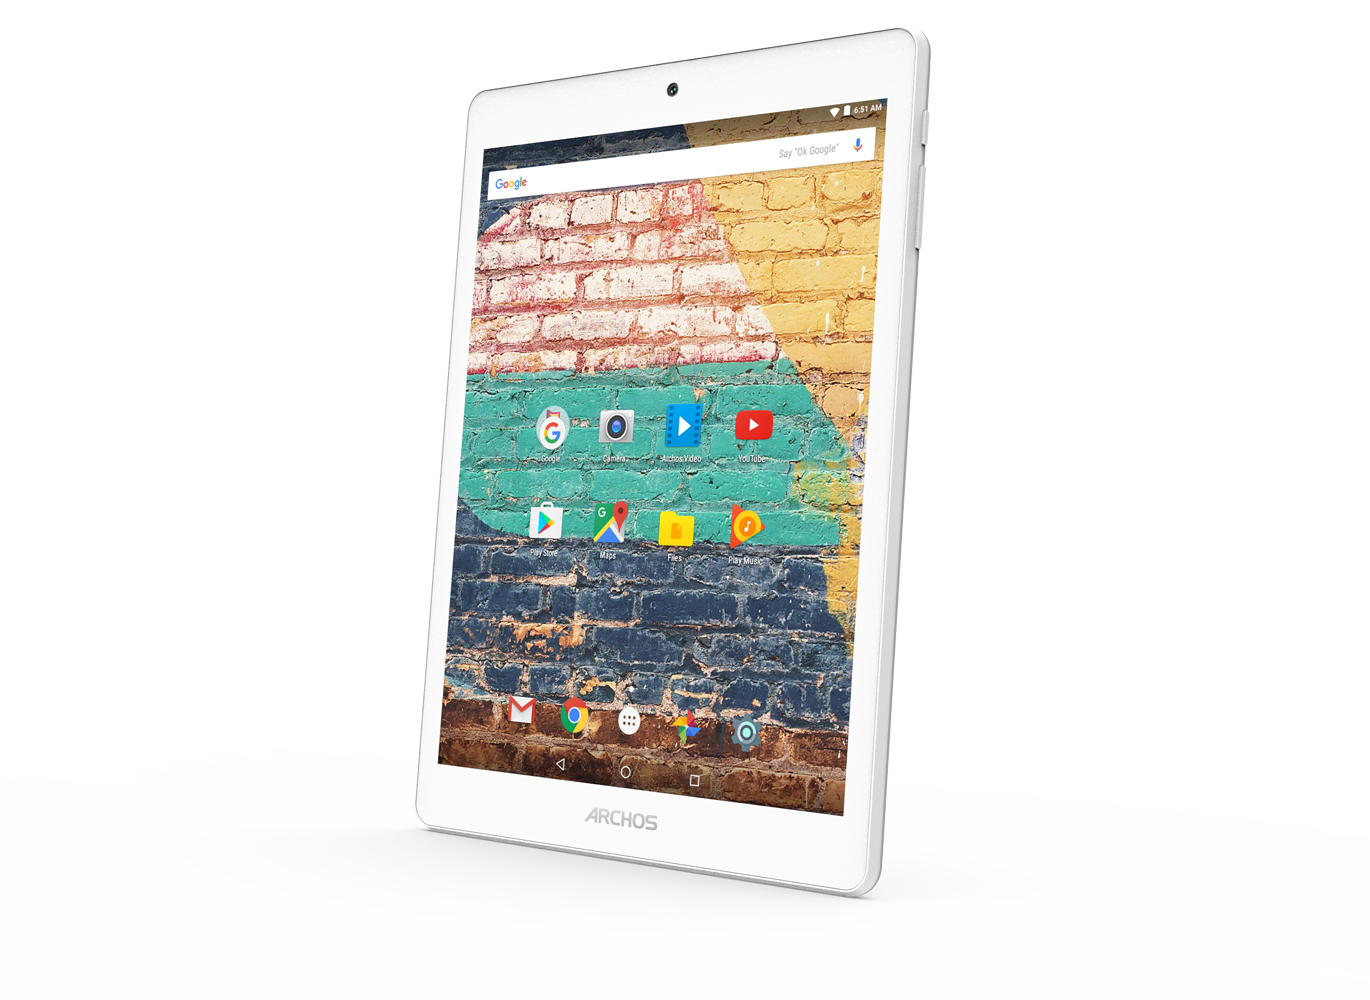 ARCHOS 79b Neon, Tablets - Overview